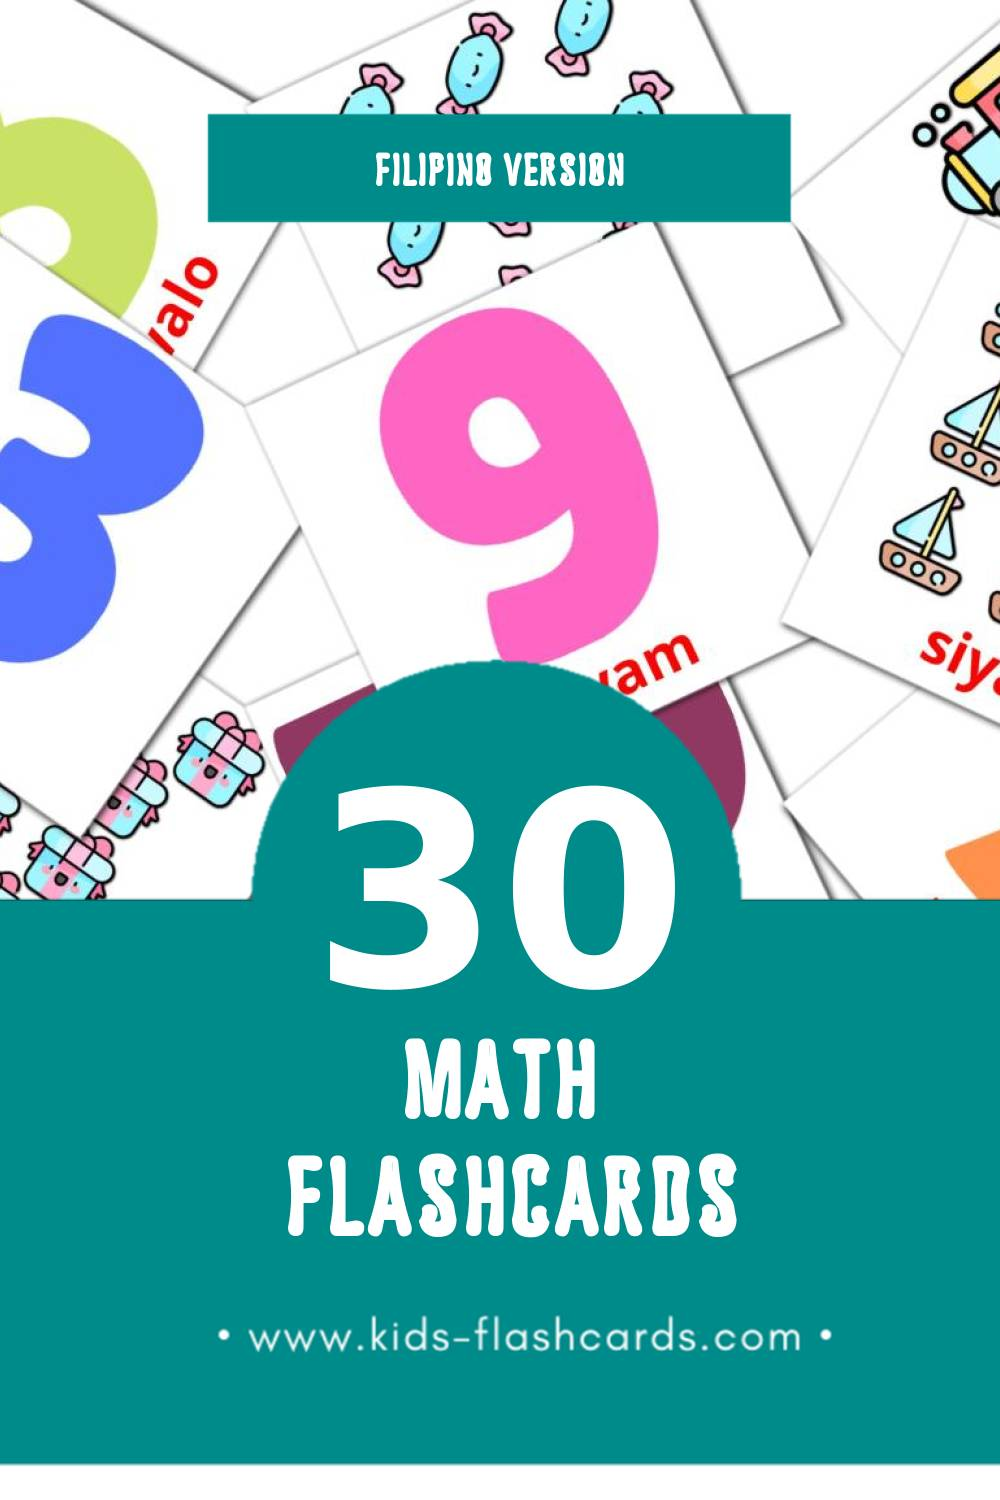 Visual Ilonggo 1-10 Flashcards for Toddlers (30 cards in Filipino)